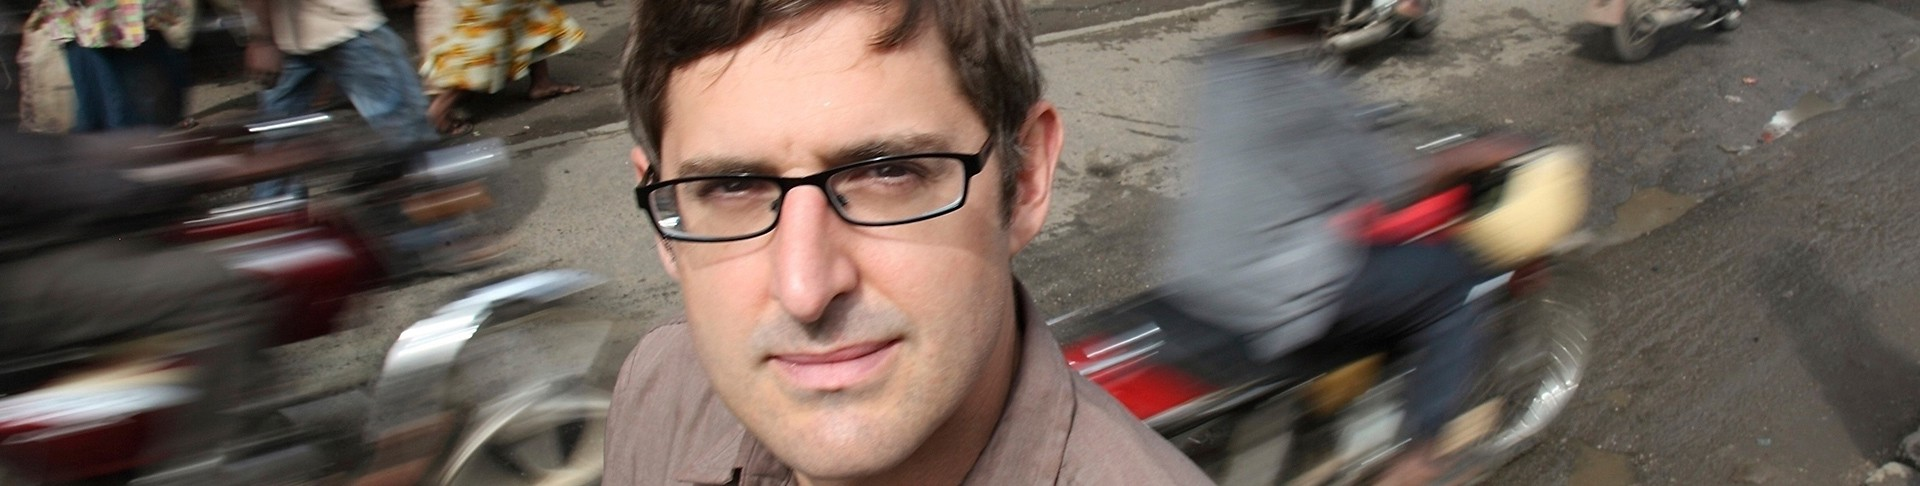 Louis Theroux: Law and Disorder - Lagos